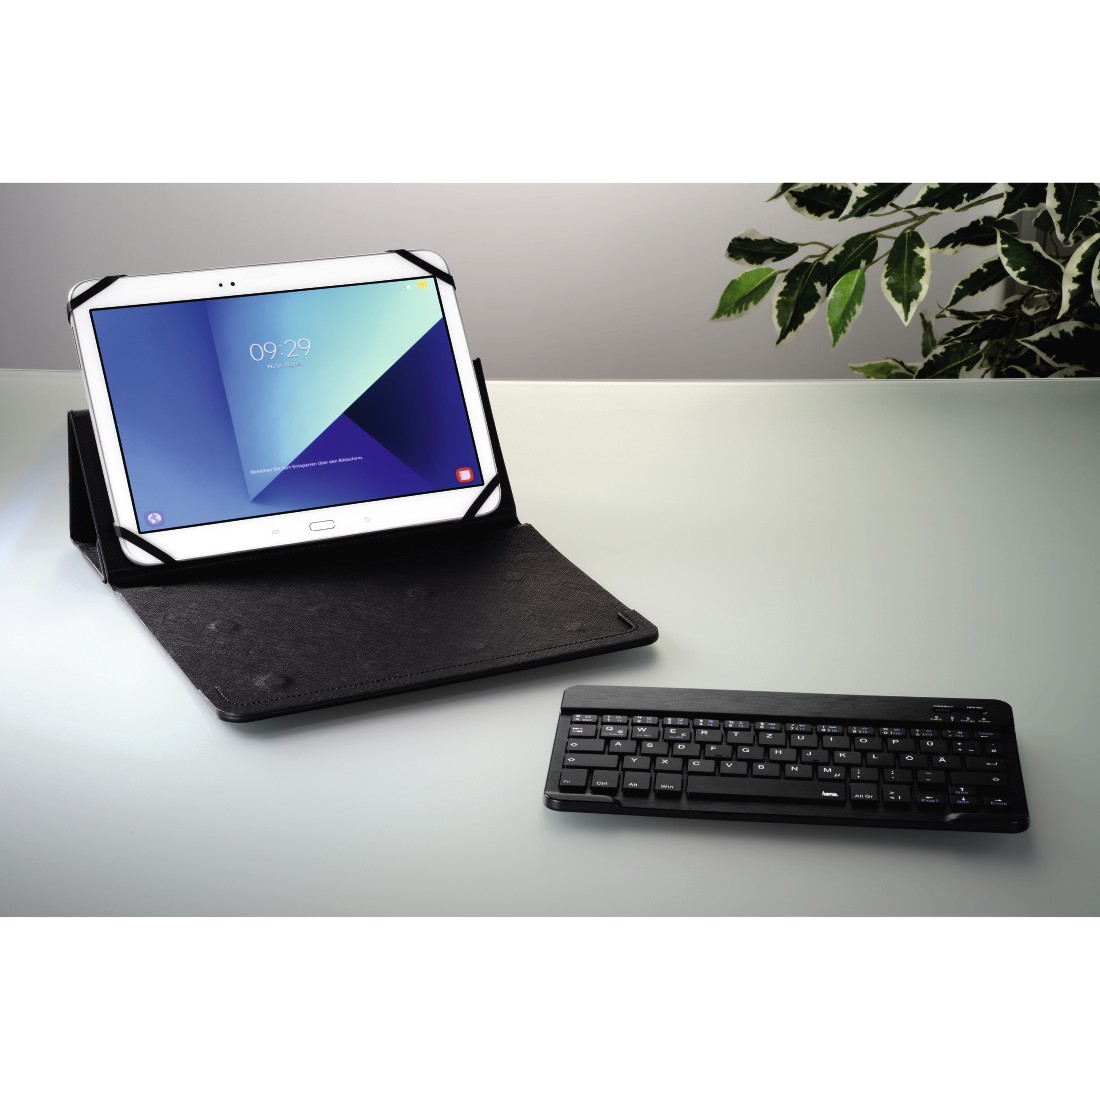 "awx5 High-Res Appliance 5 - Hama, Bluetooth® Keyboard with ""KEY4ALL X3100"" Tablet Bag"